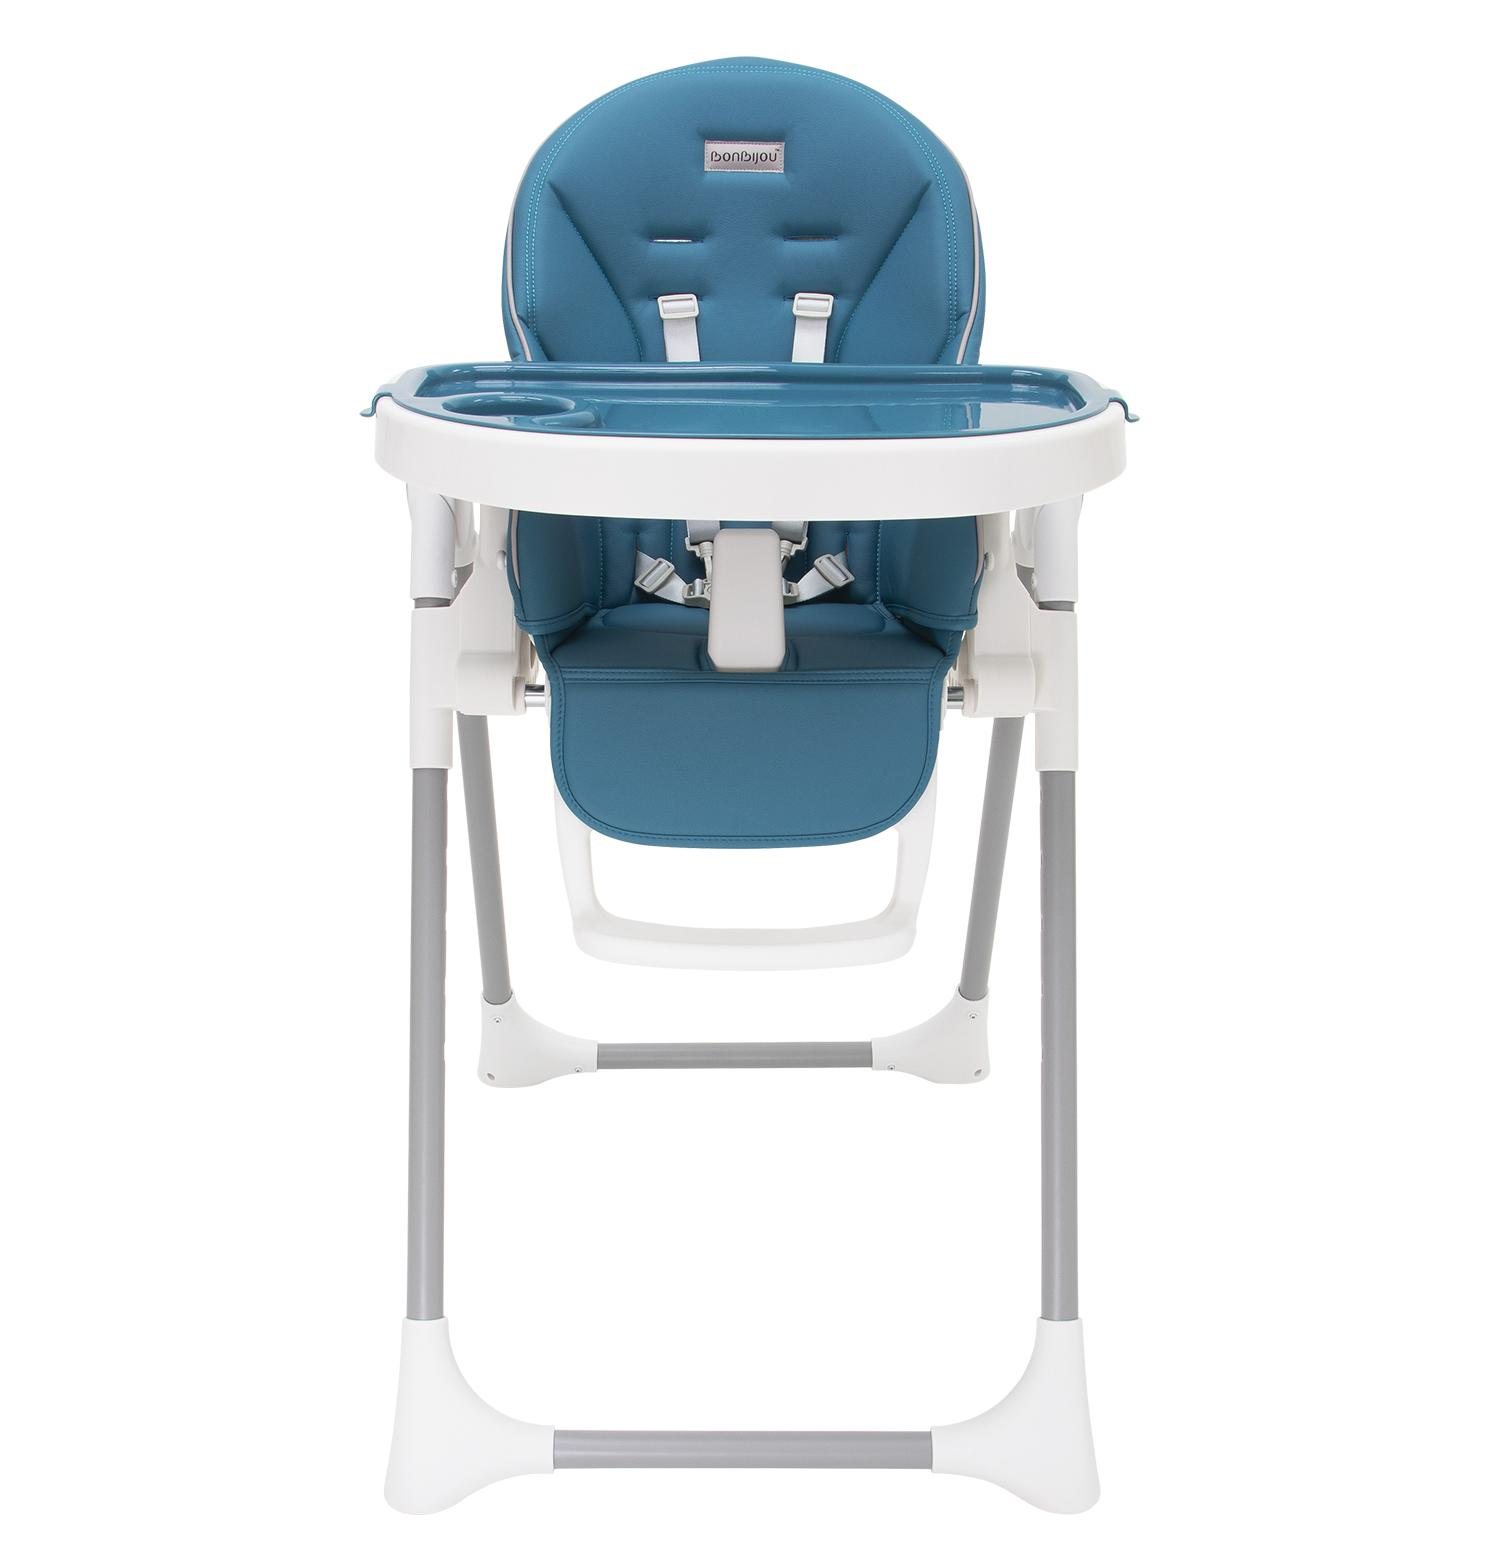 Bonbijou Regan High Chair (Peacock Teal)